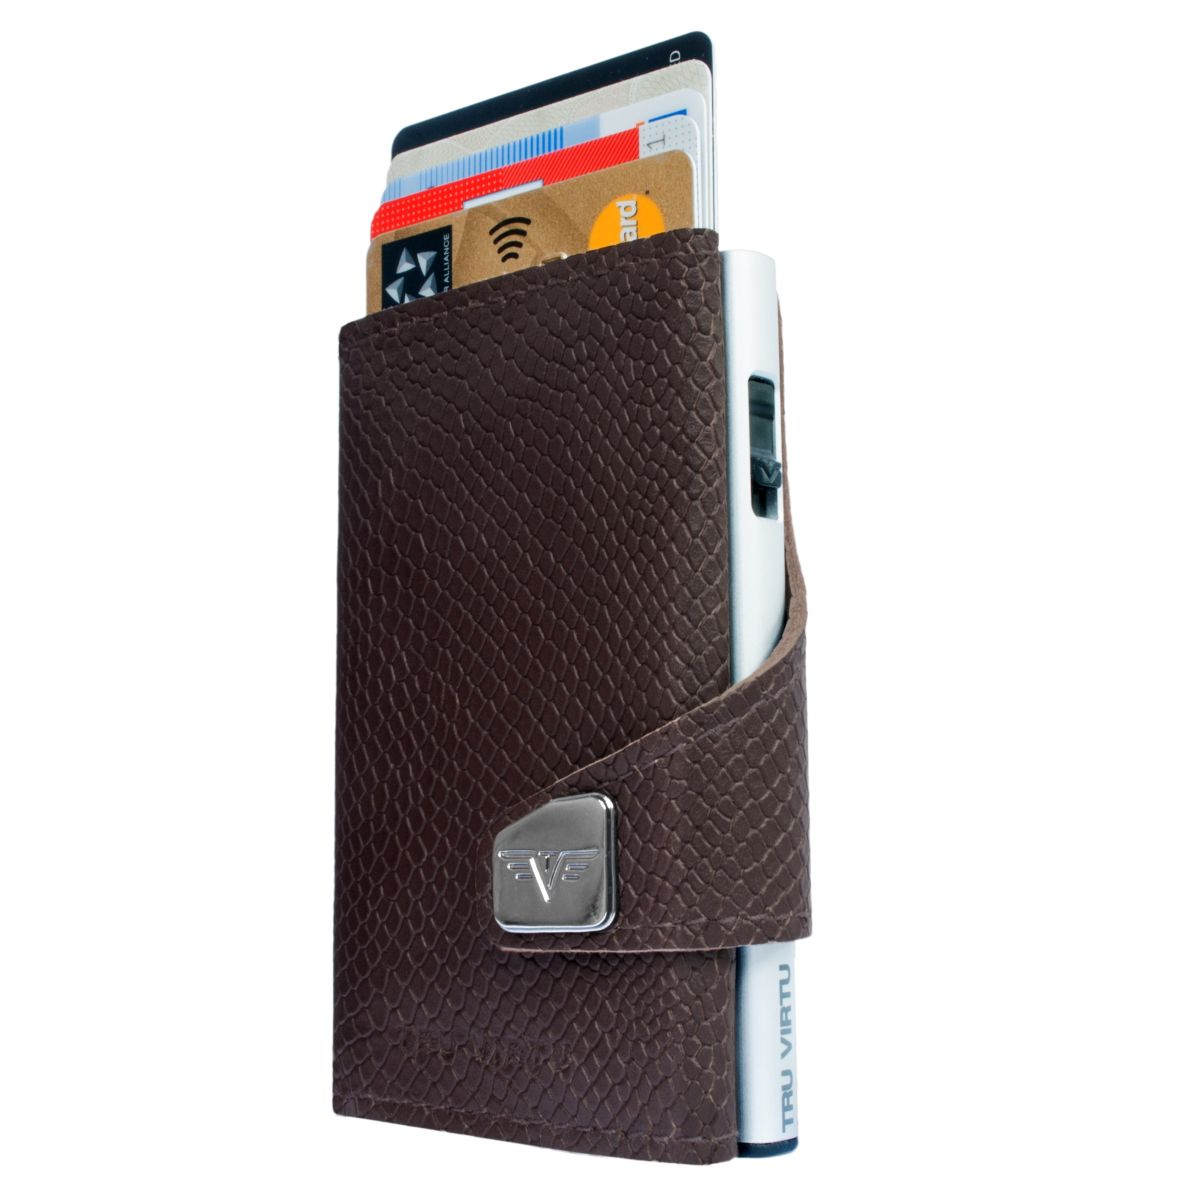 TRU VIRTU Click n Slide Wallet - Cobra Dark Brown